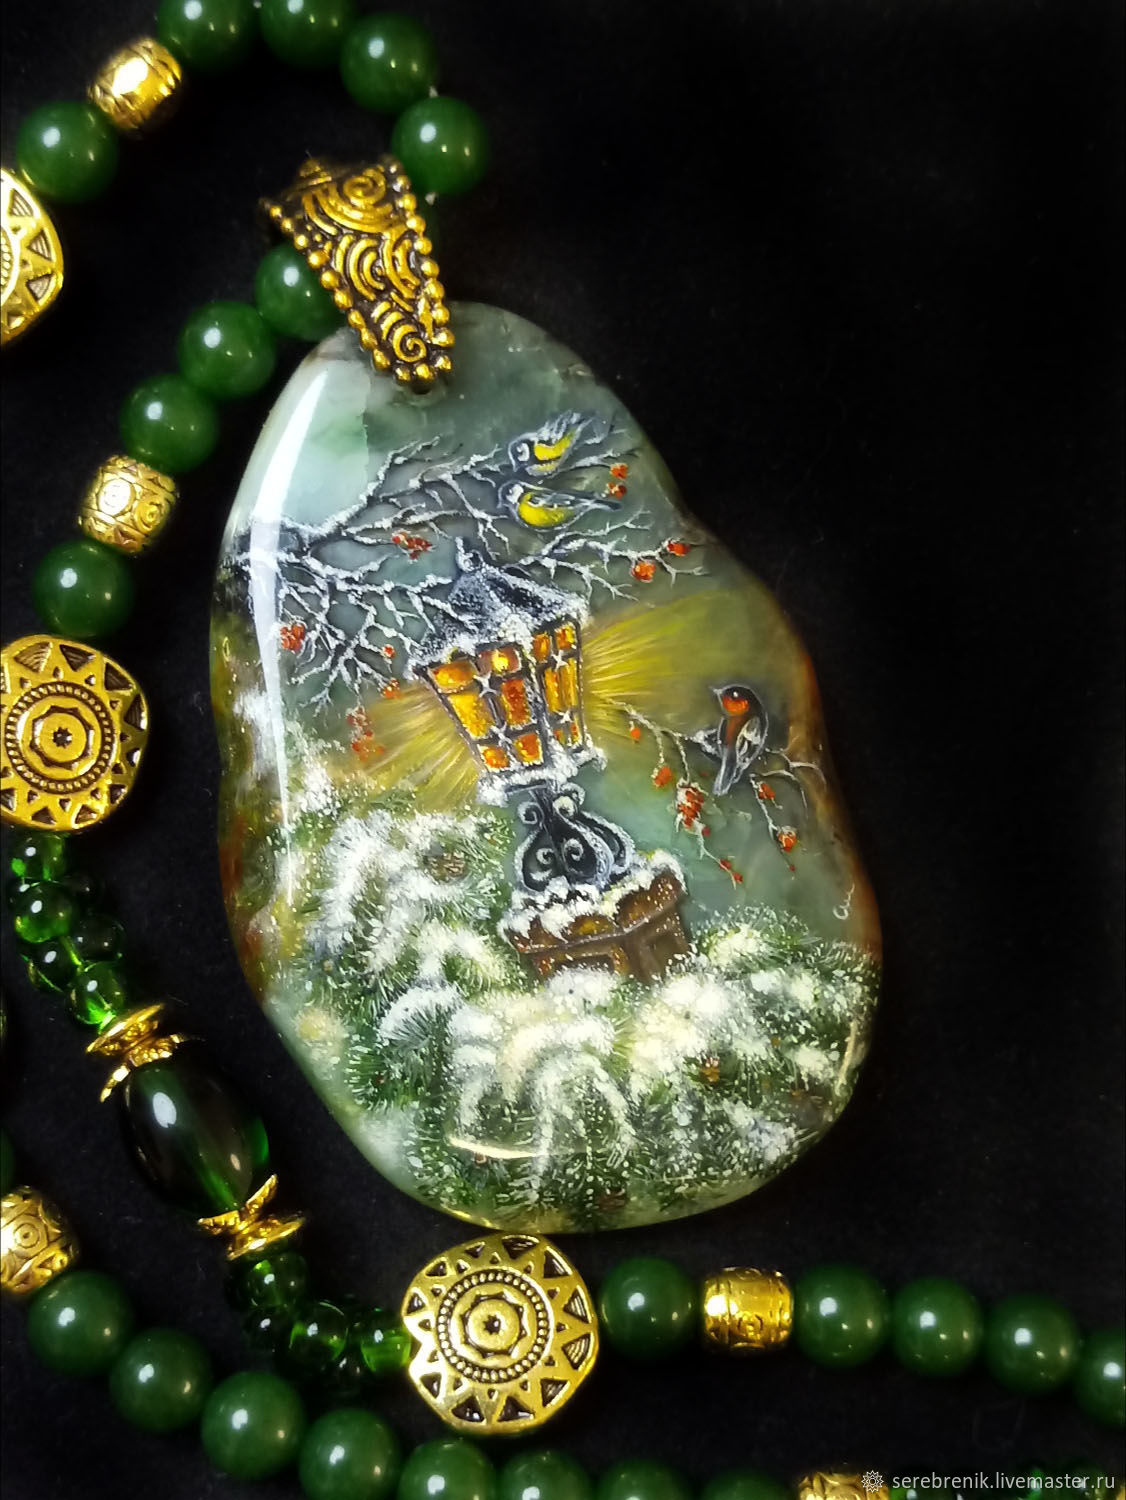 Winter's tale-painting on stone / winter pendant with painting, Pendant, Moscow,  Фото №1